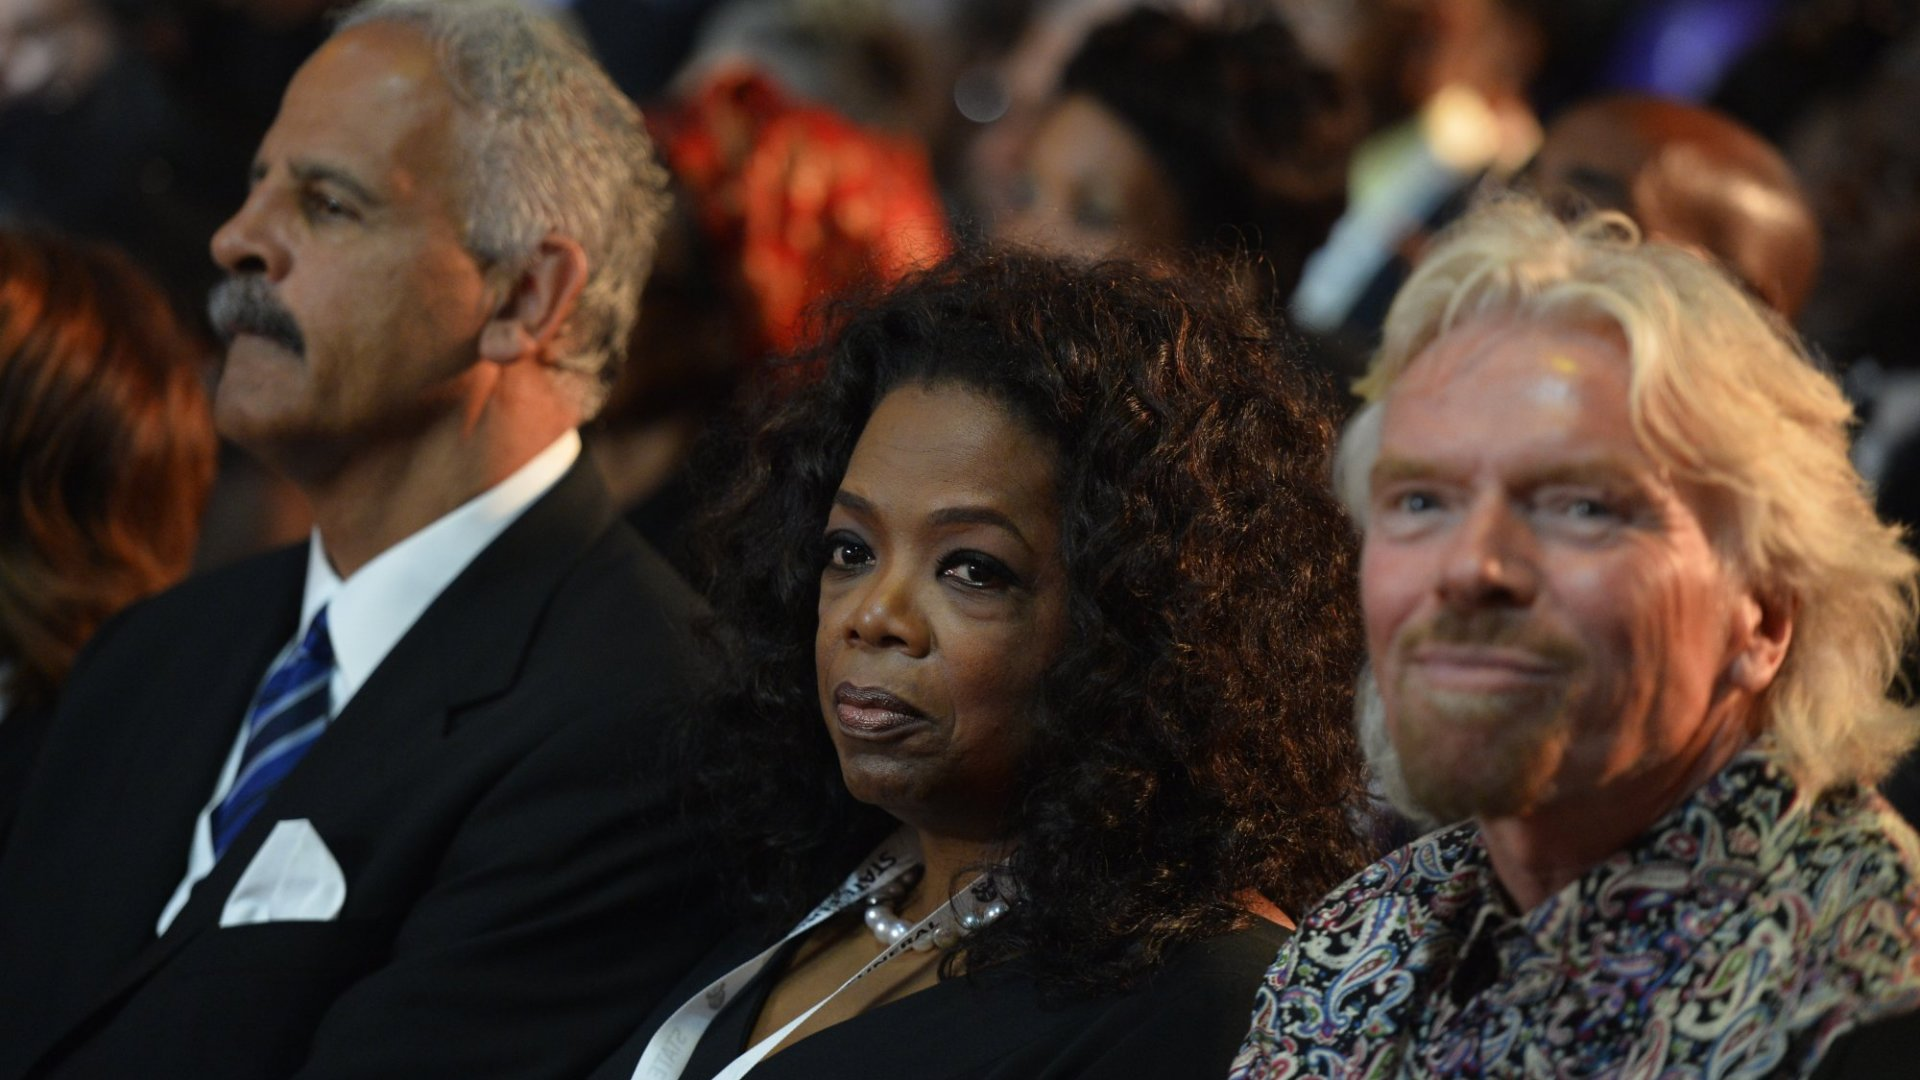 Oprah Winfrey (center) and Richard Branson (right).